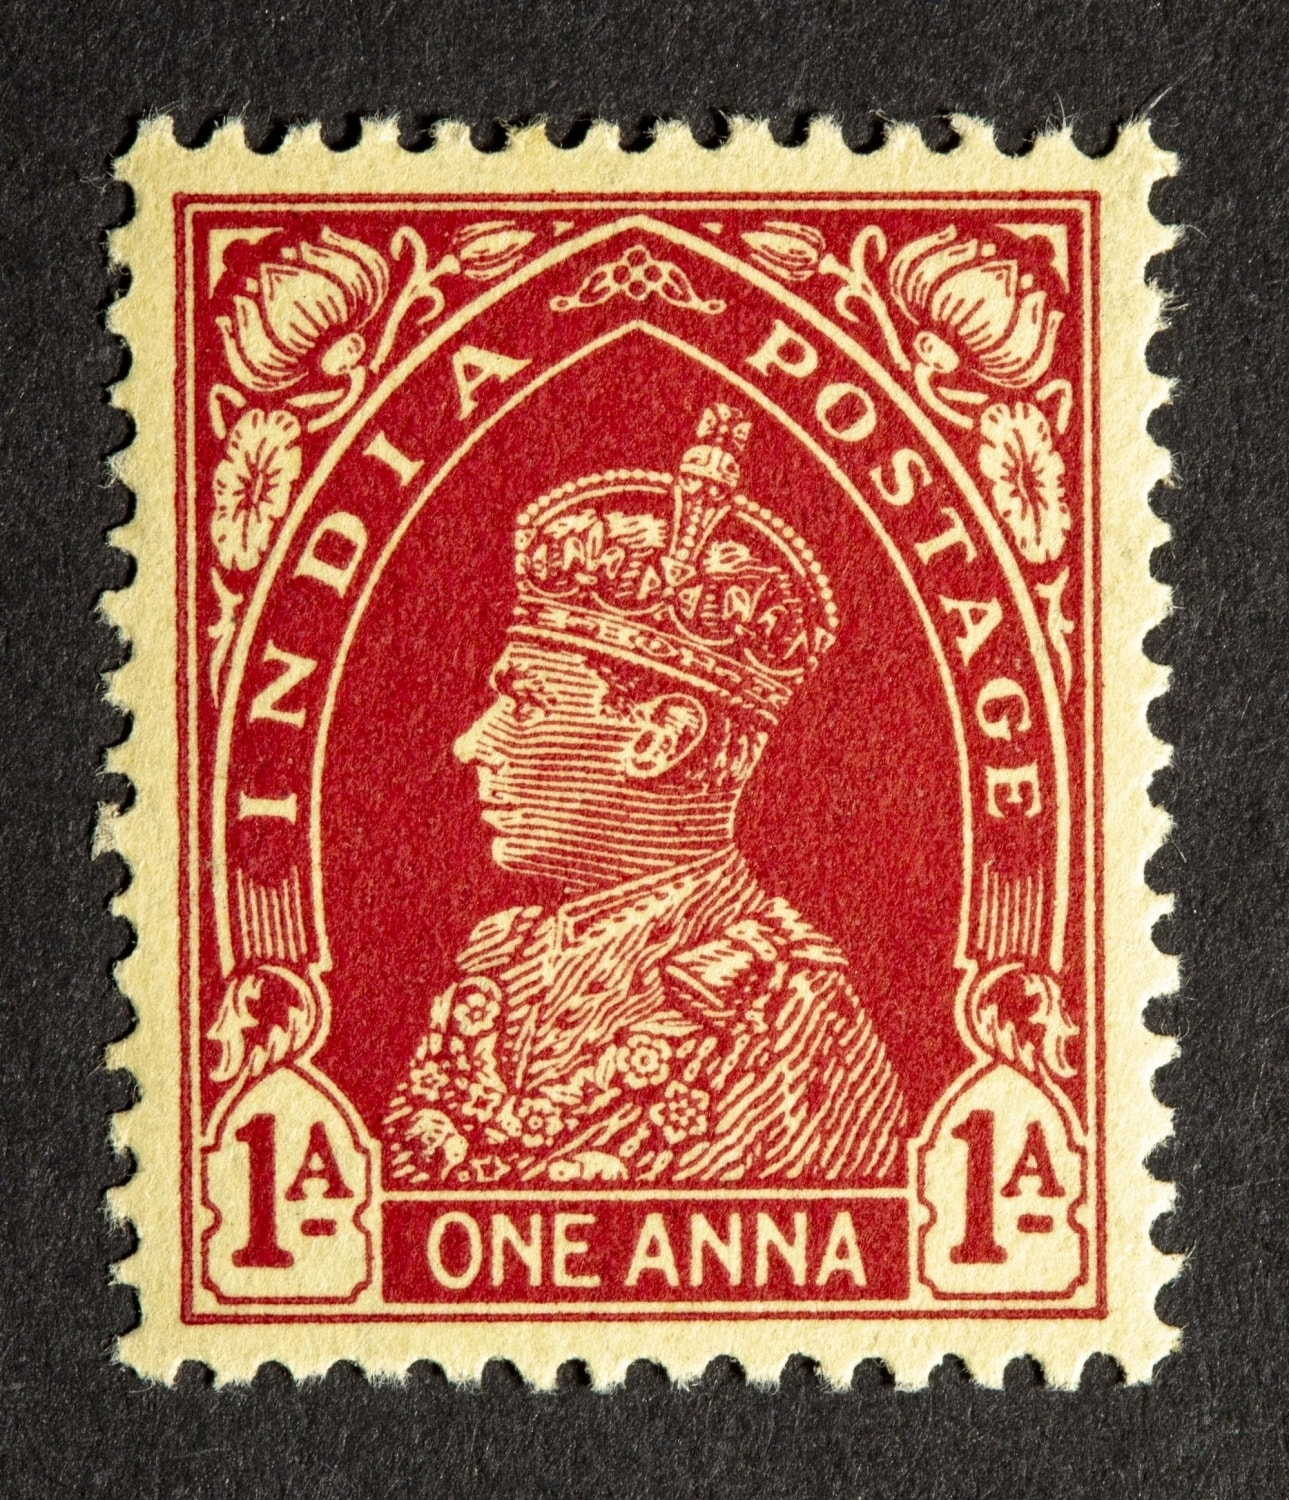 King George VI India Postage stamps issued during the British Rule in India. This unique series features stamps that depict the face of King George VI, the last Emperor of India. This series also features different modes of transportation used in India to deliver mail. Year of Issue: 1937. (Photo Credit: The Ewari Collection)